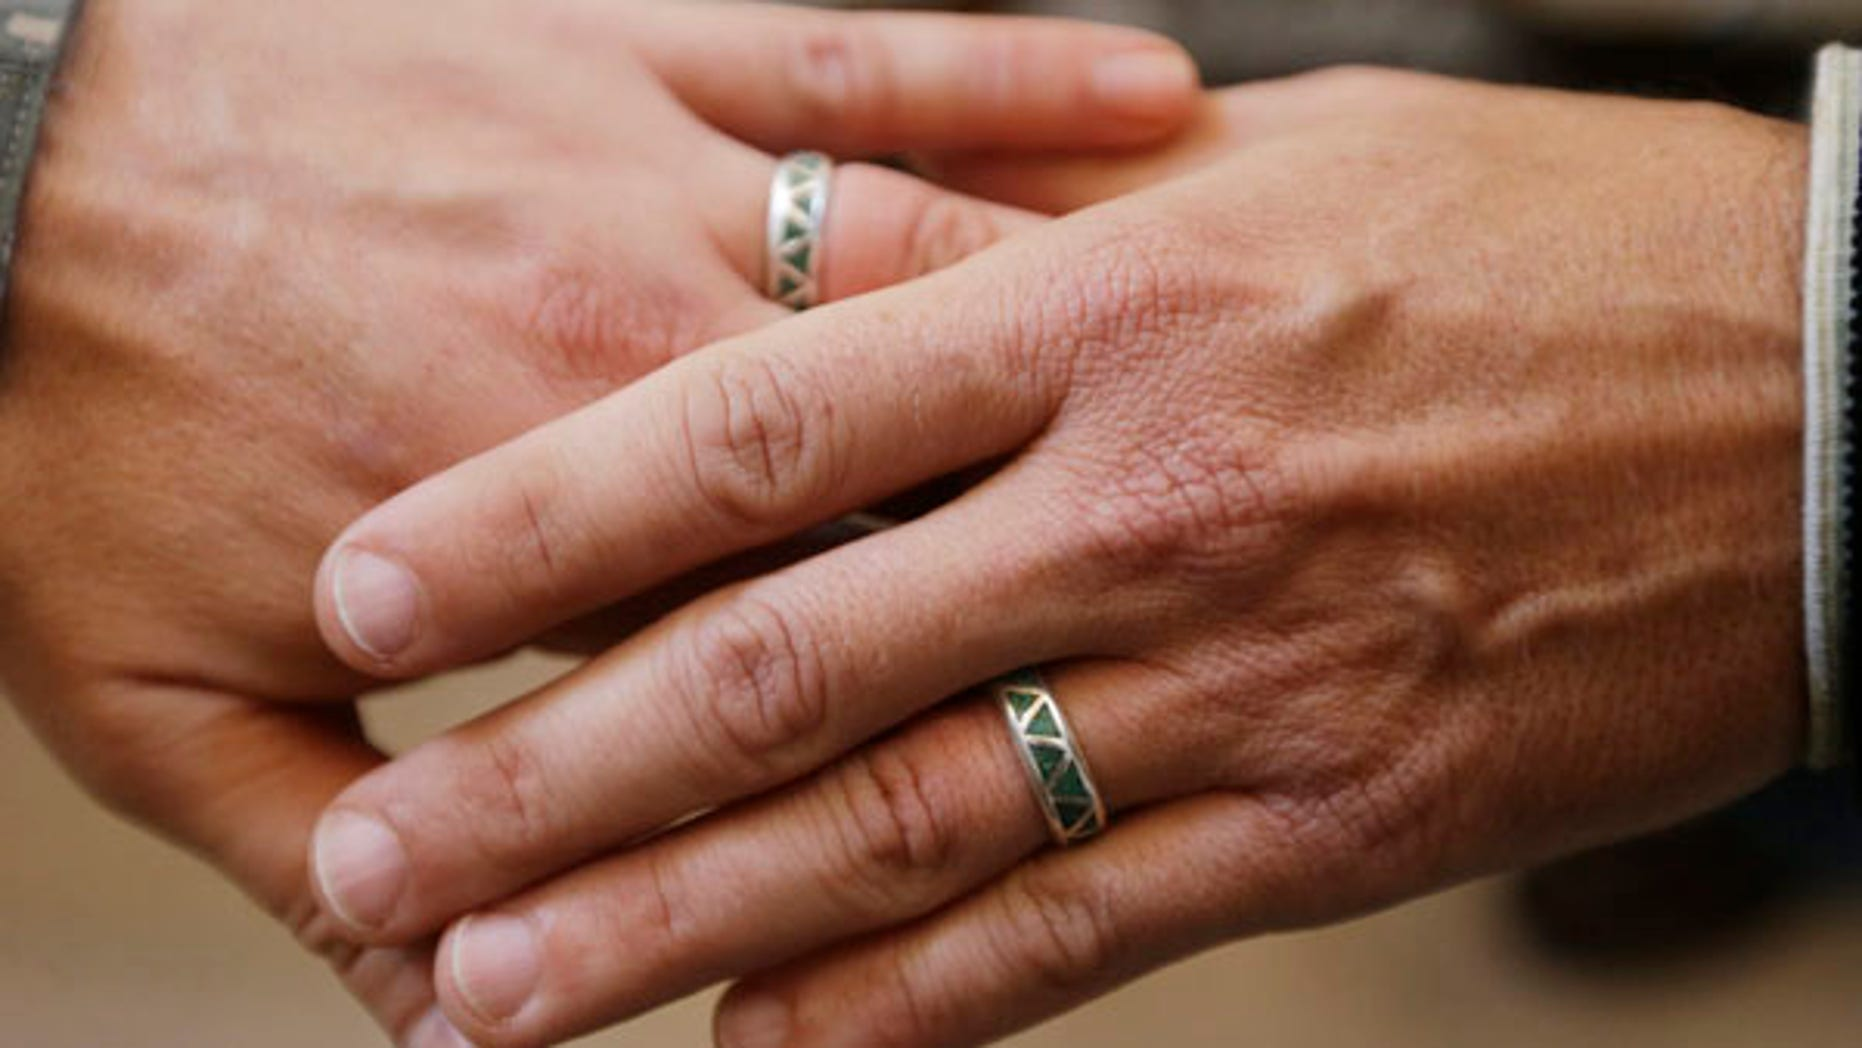 June 29, 2013: Army Capt. Michael Potoczniak, left, and Todd Saunders, of El Cerrito, Calif., show their wedding rings after they exchanged vows at City Hall in San Francisco.